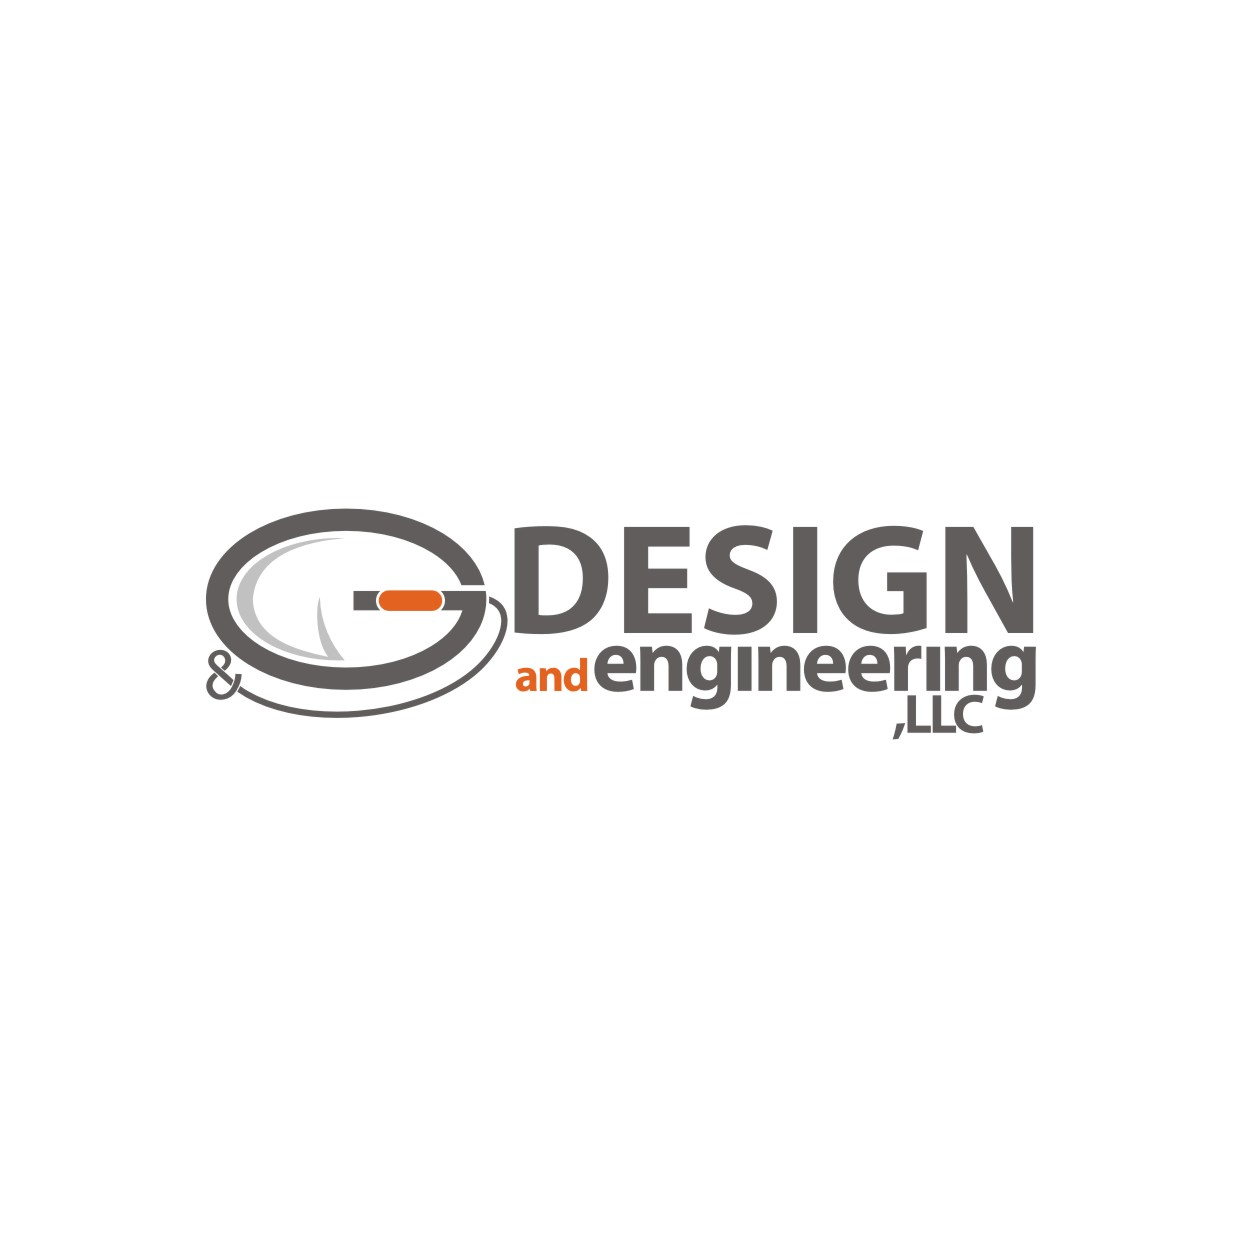 Creative Logo Design For G Amp G Design And Engineering Llc